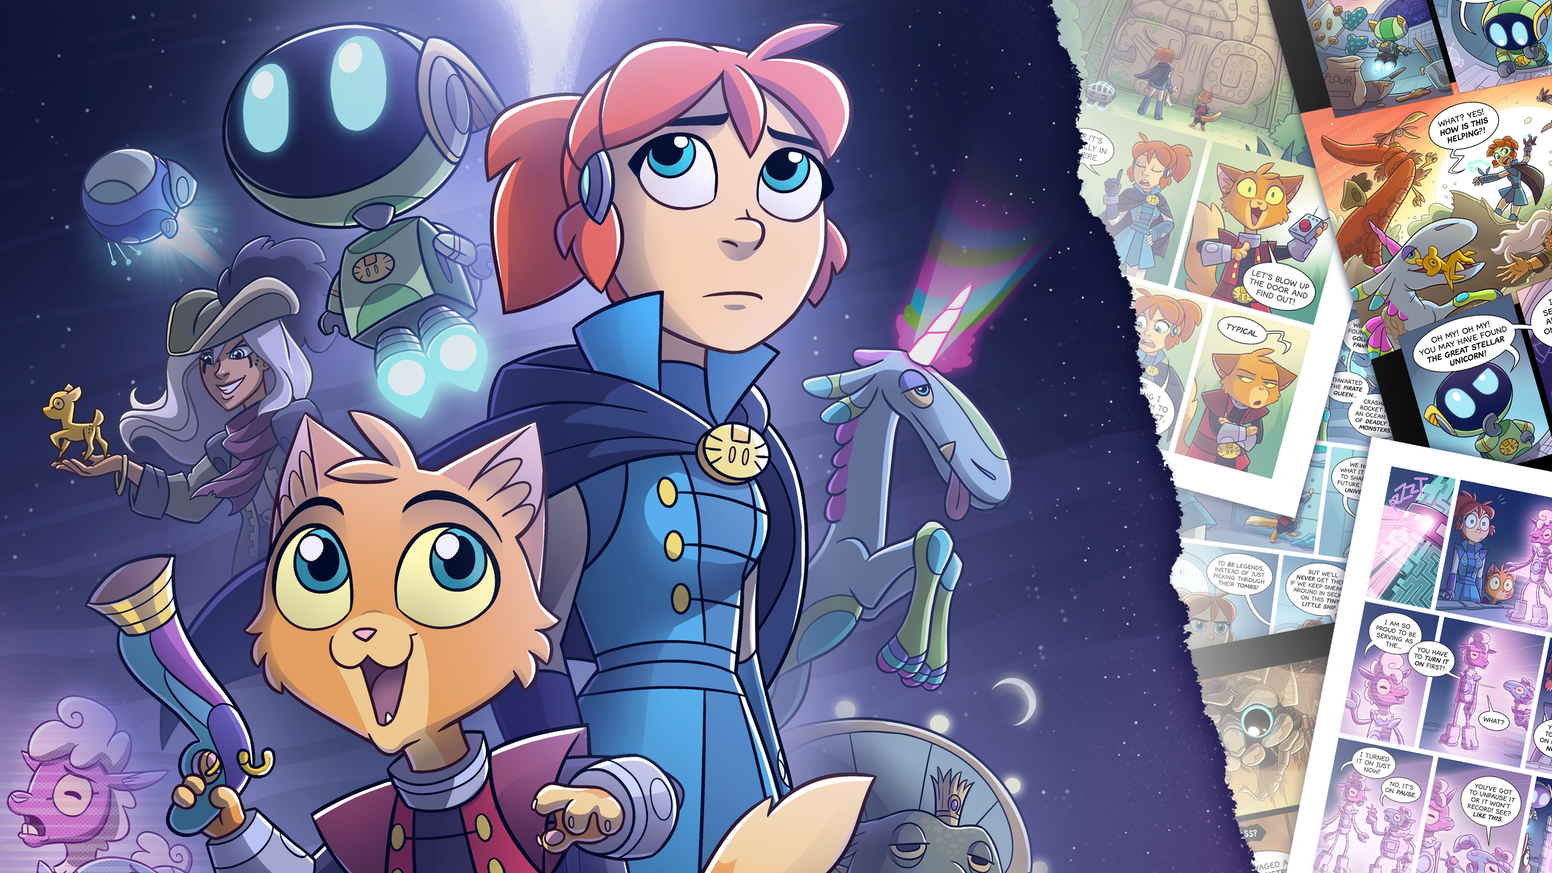 The print edition of Meow the Infinite, an epic science fiction comic about a starfaring princess and her fearless feline companion.